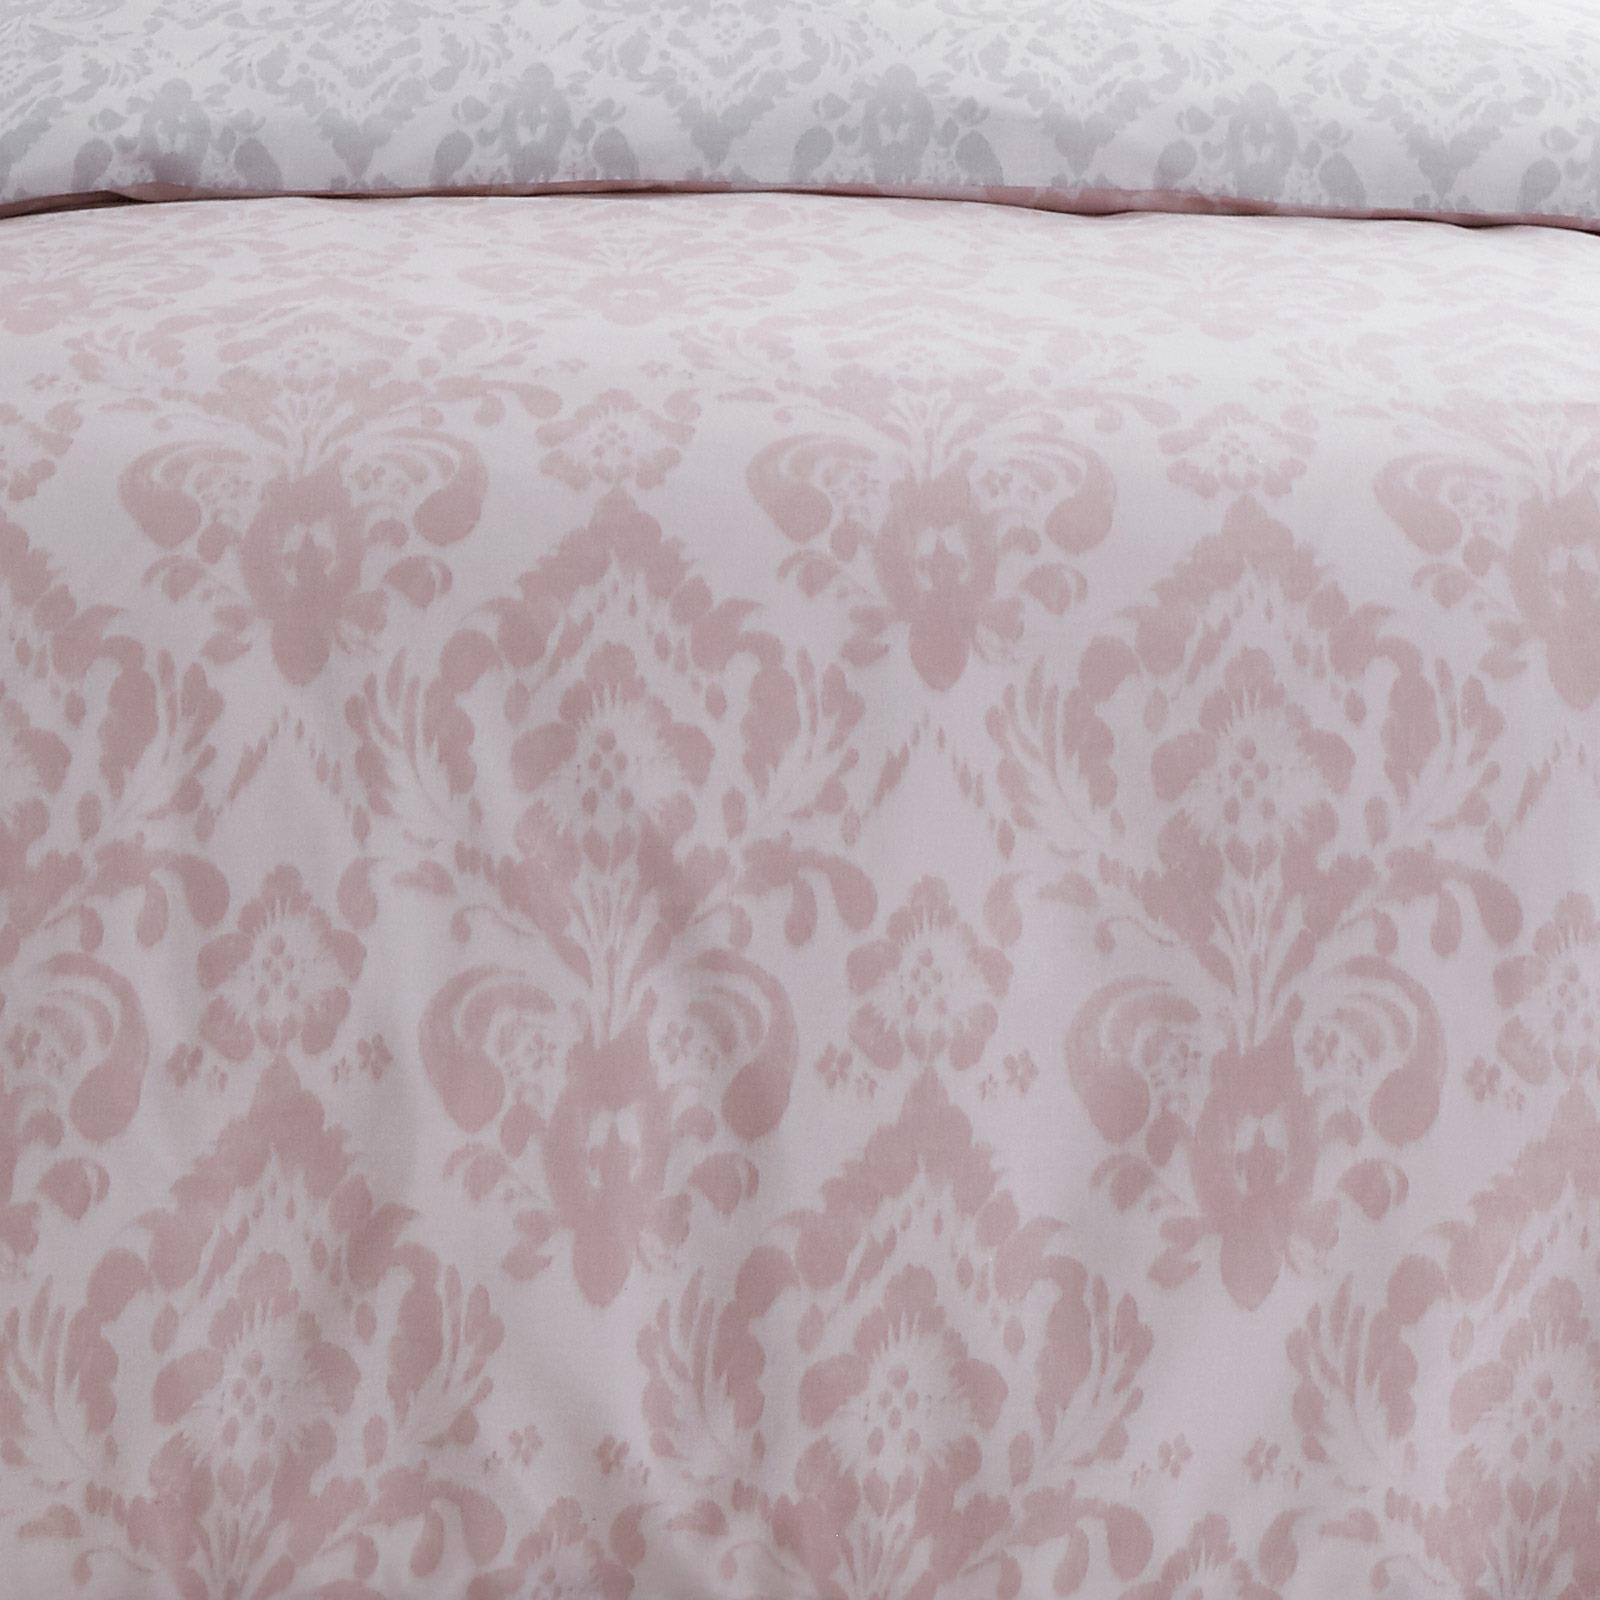 thumbnail 10 - Catherine Lansfield Damask Blush Duvet Covers Pink Grey Quilt Cover Bedding Sets